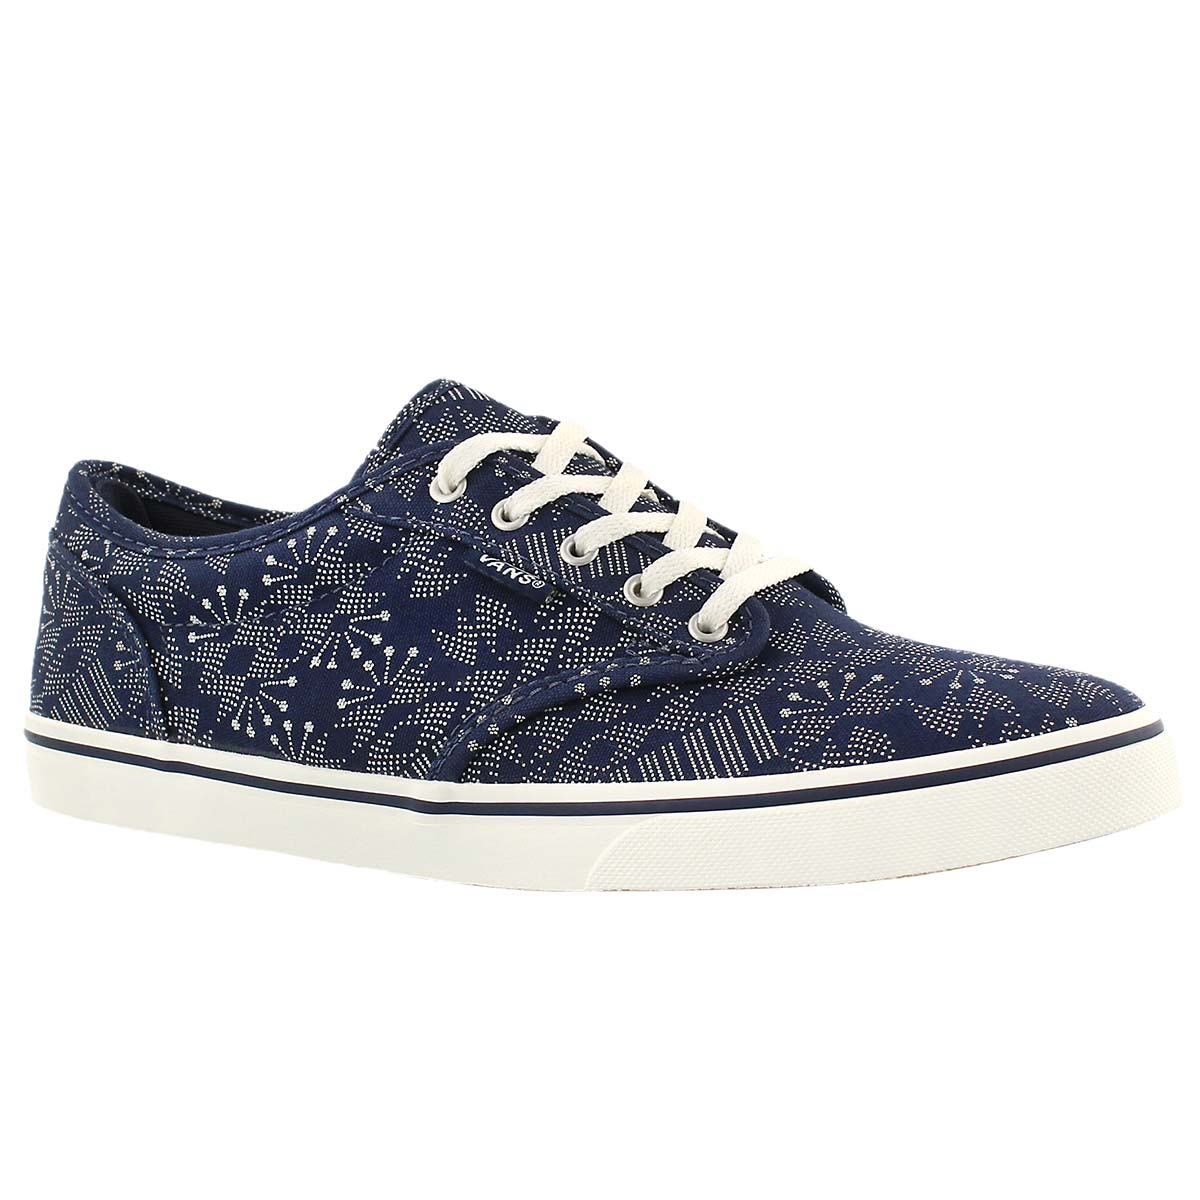 Women's ATWOOD LOW indigo print laceup sneakers